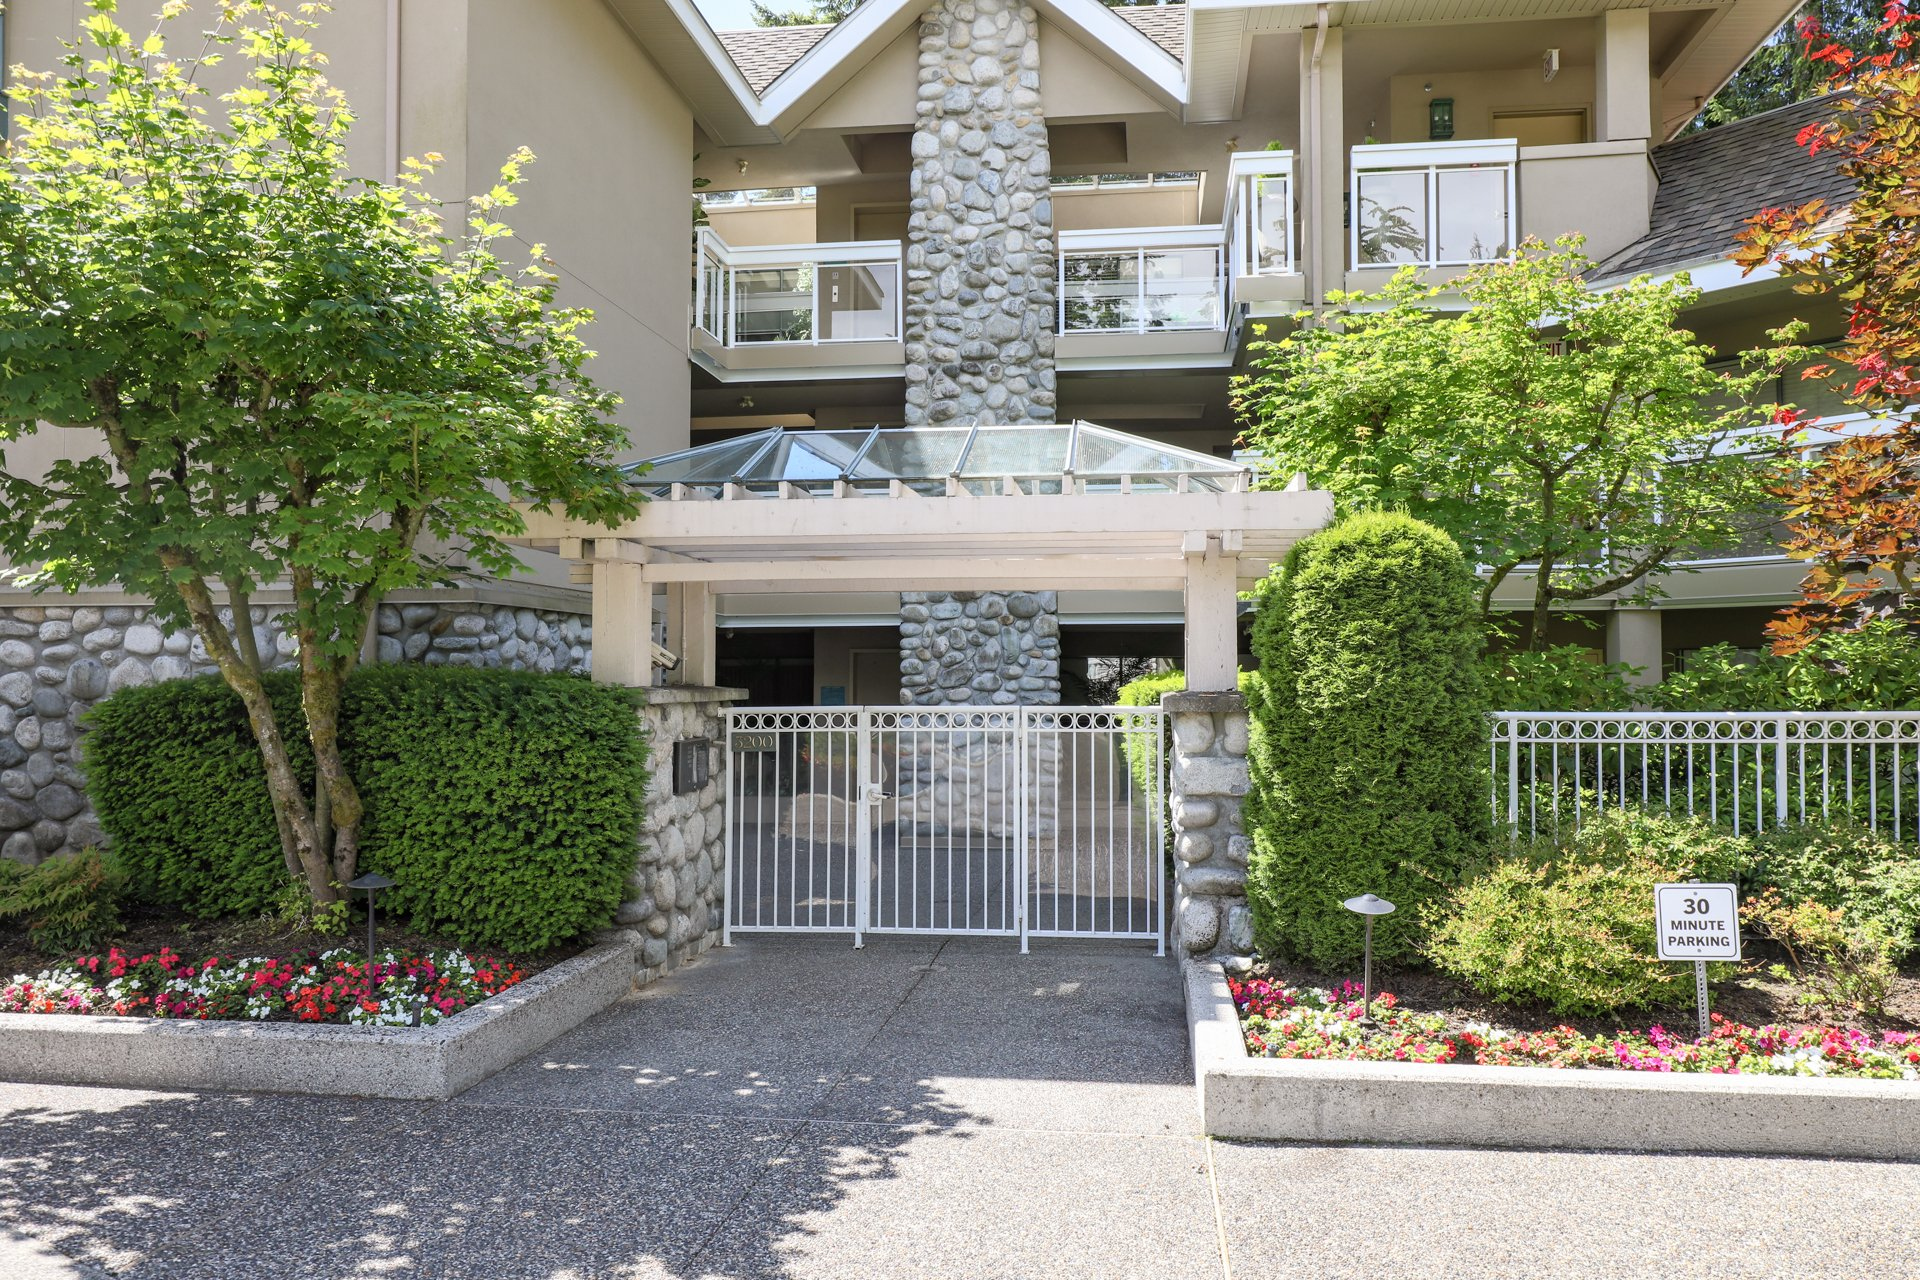 Canyon Point - 3200 Capilano | Condos For Sale + New Listing Alerts